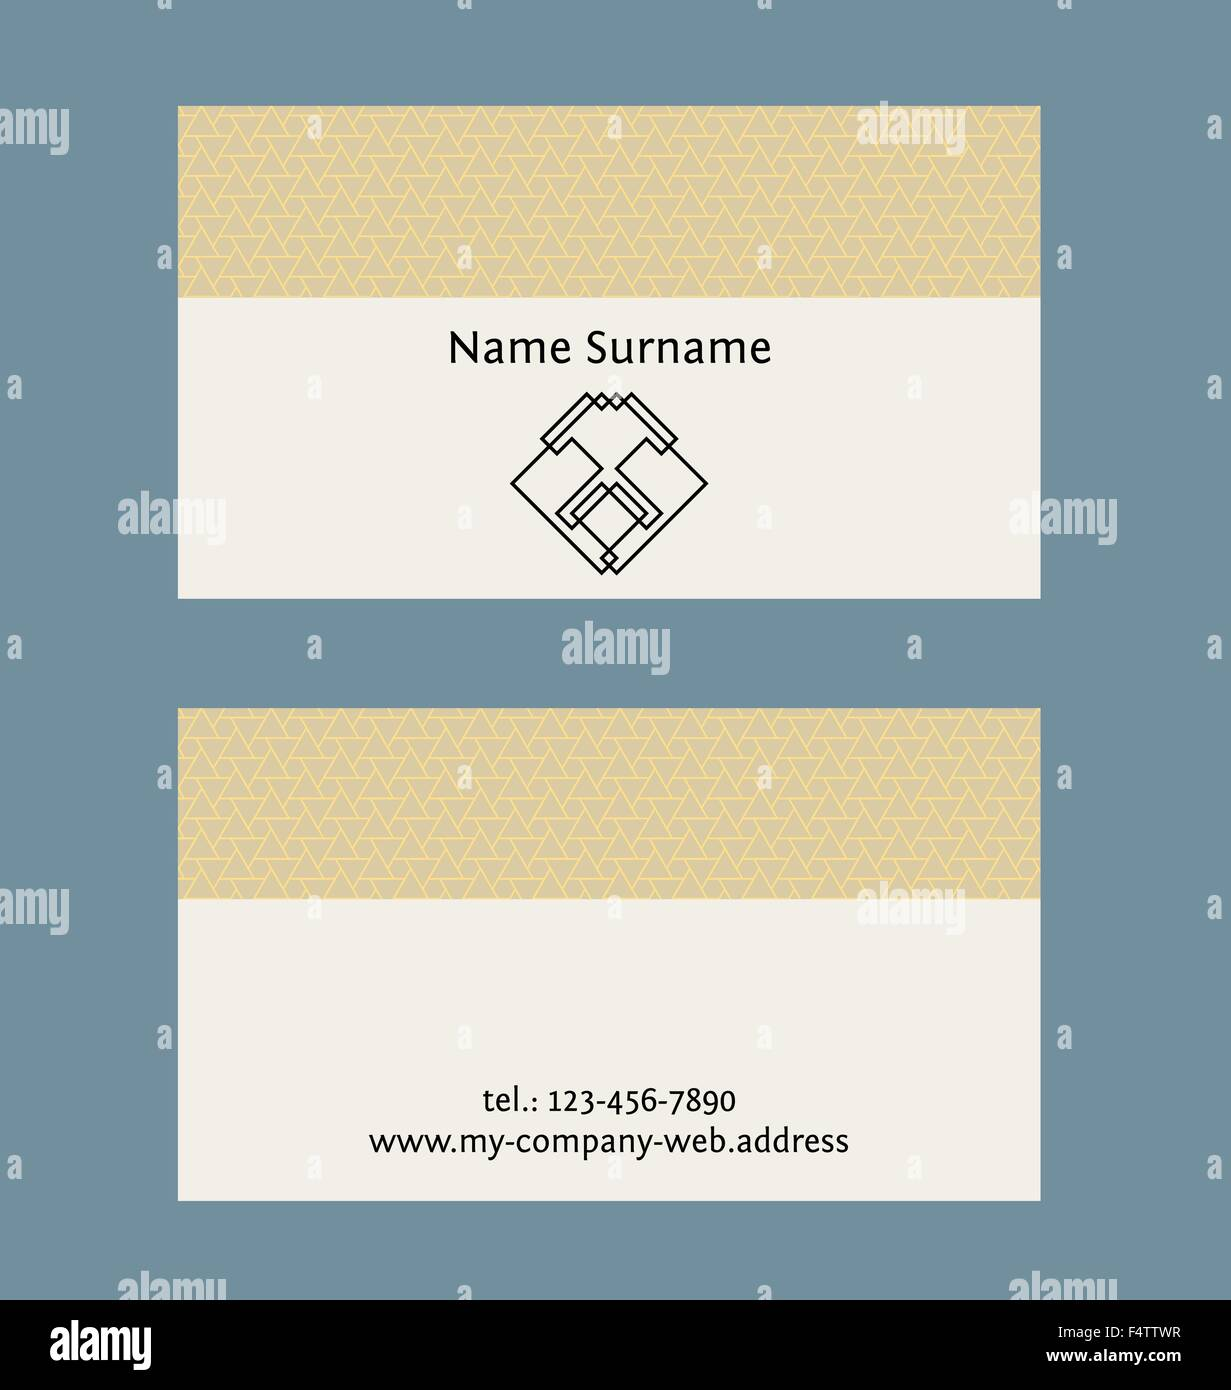 Business card layout. Linear geometric logo and pattern. Editable ...